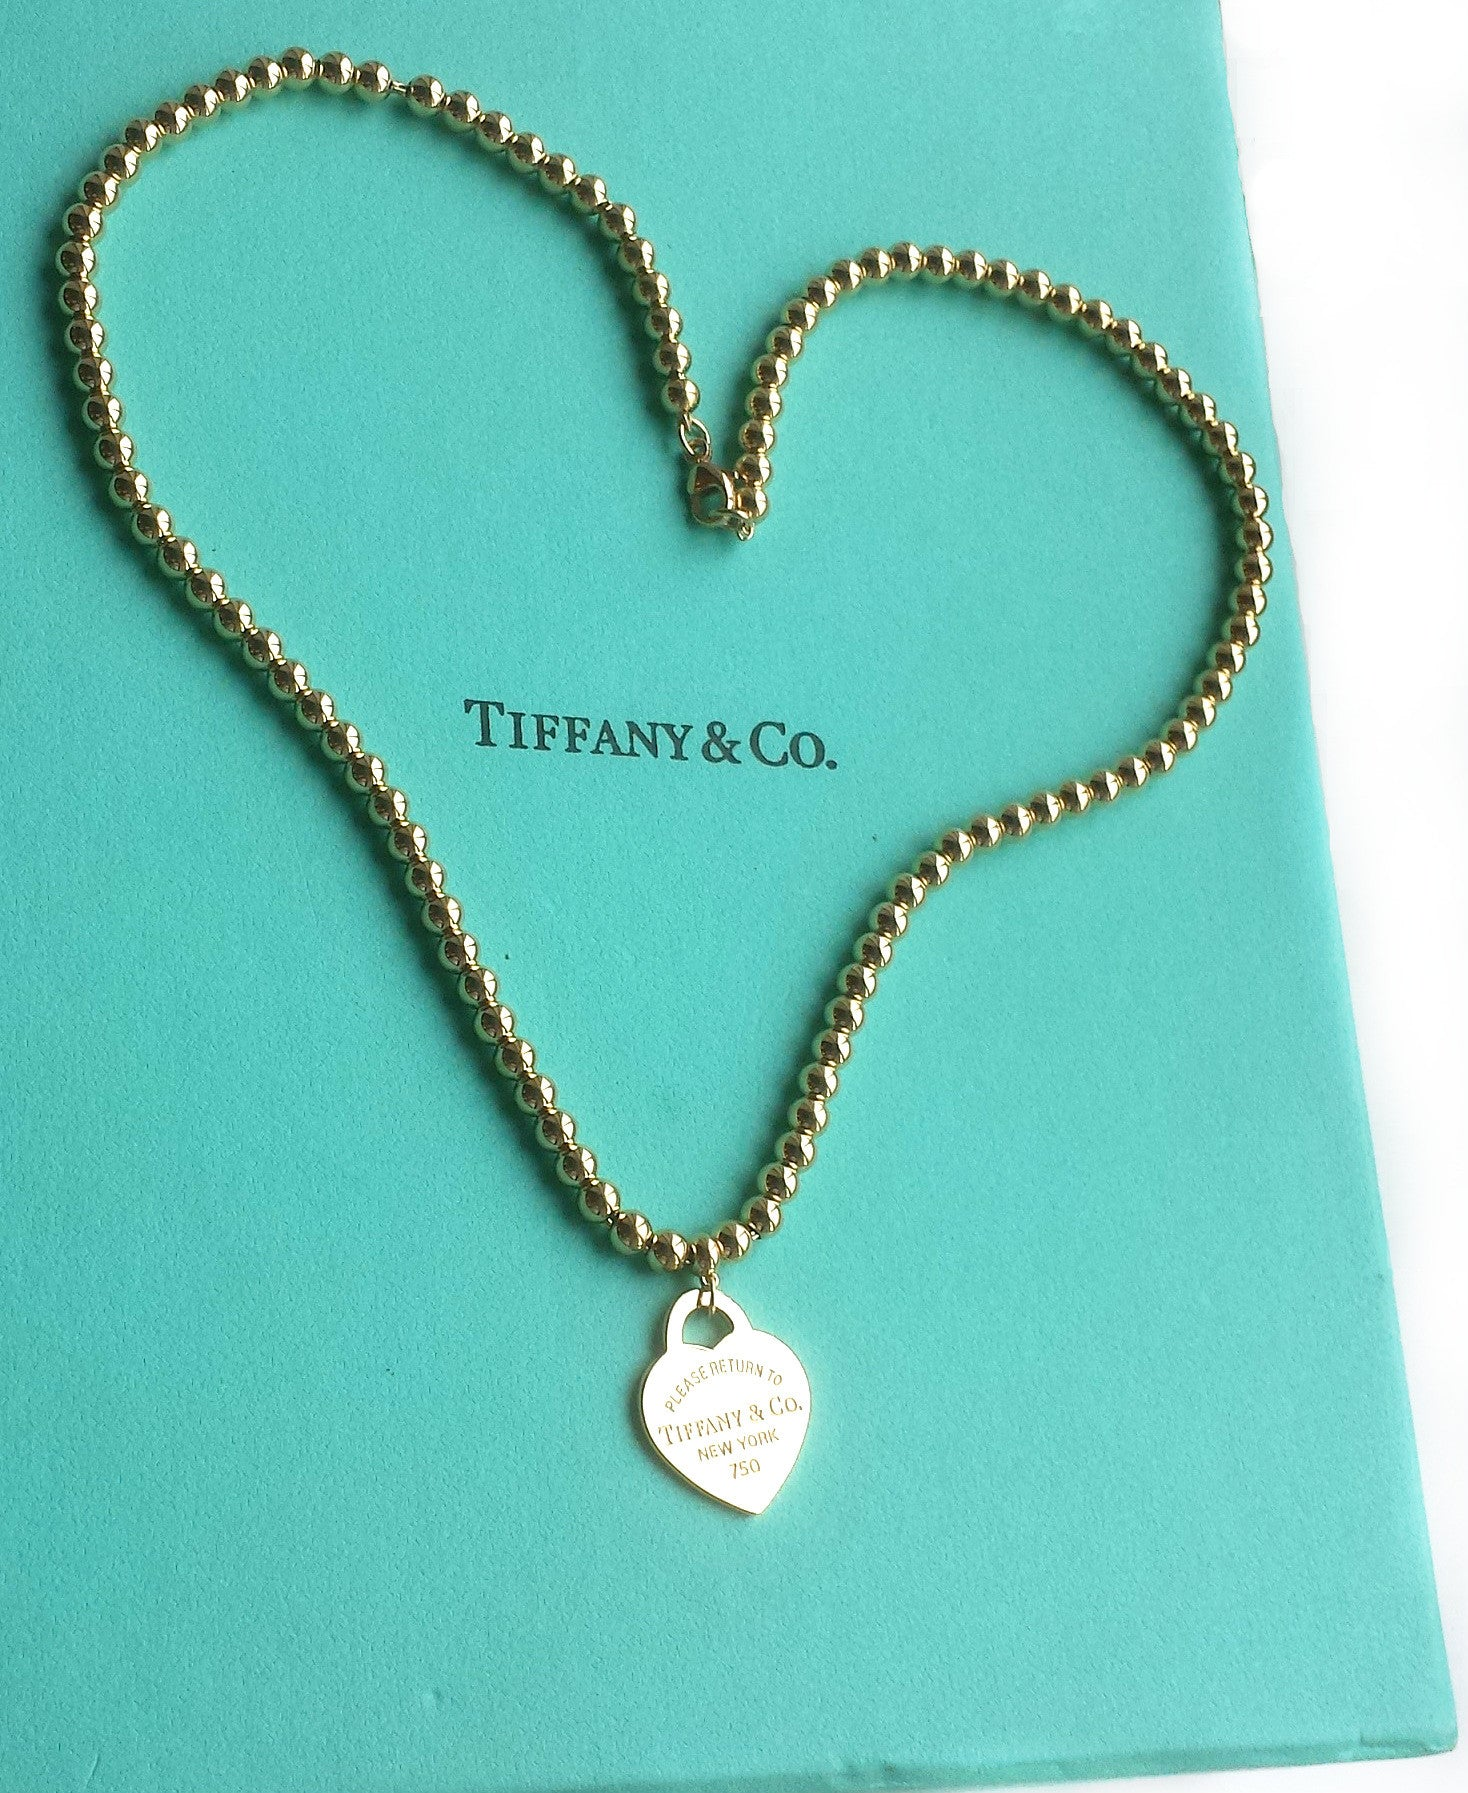 75fe24b28 Tiffany & Co. Return to™ 18k Yellow Gold Small Bead Necklace with Heart Tag,  16 inches